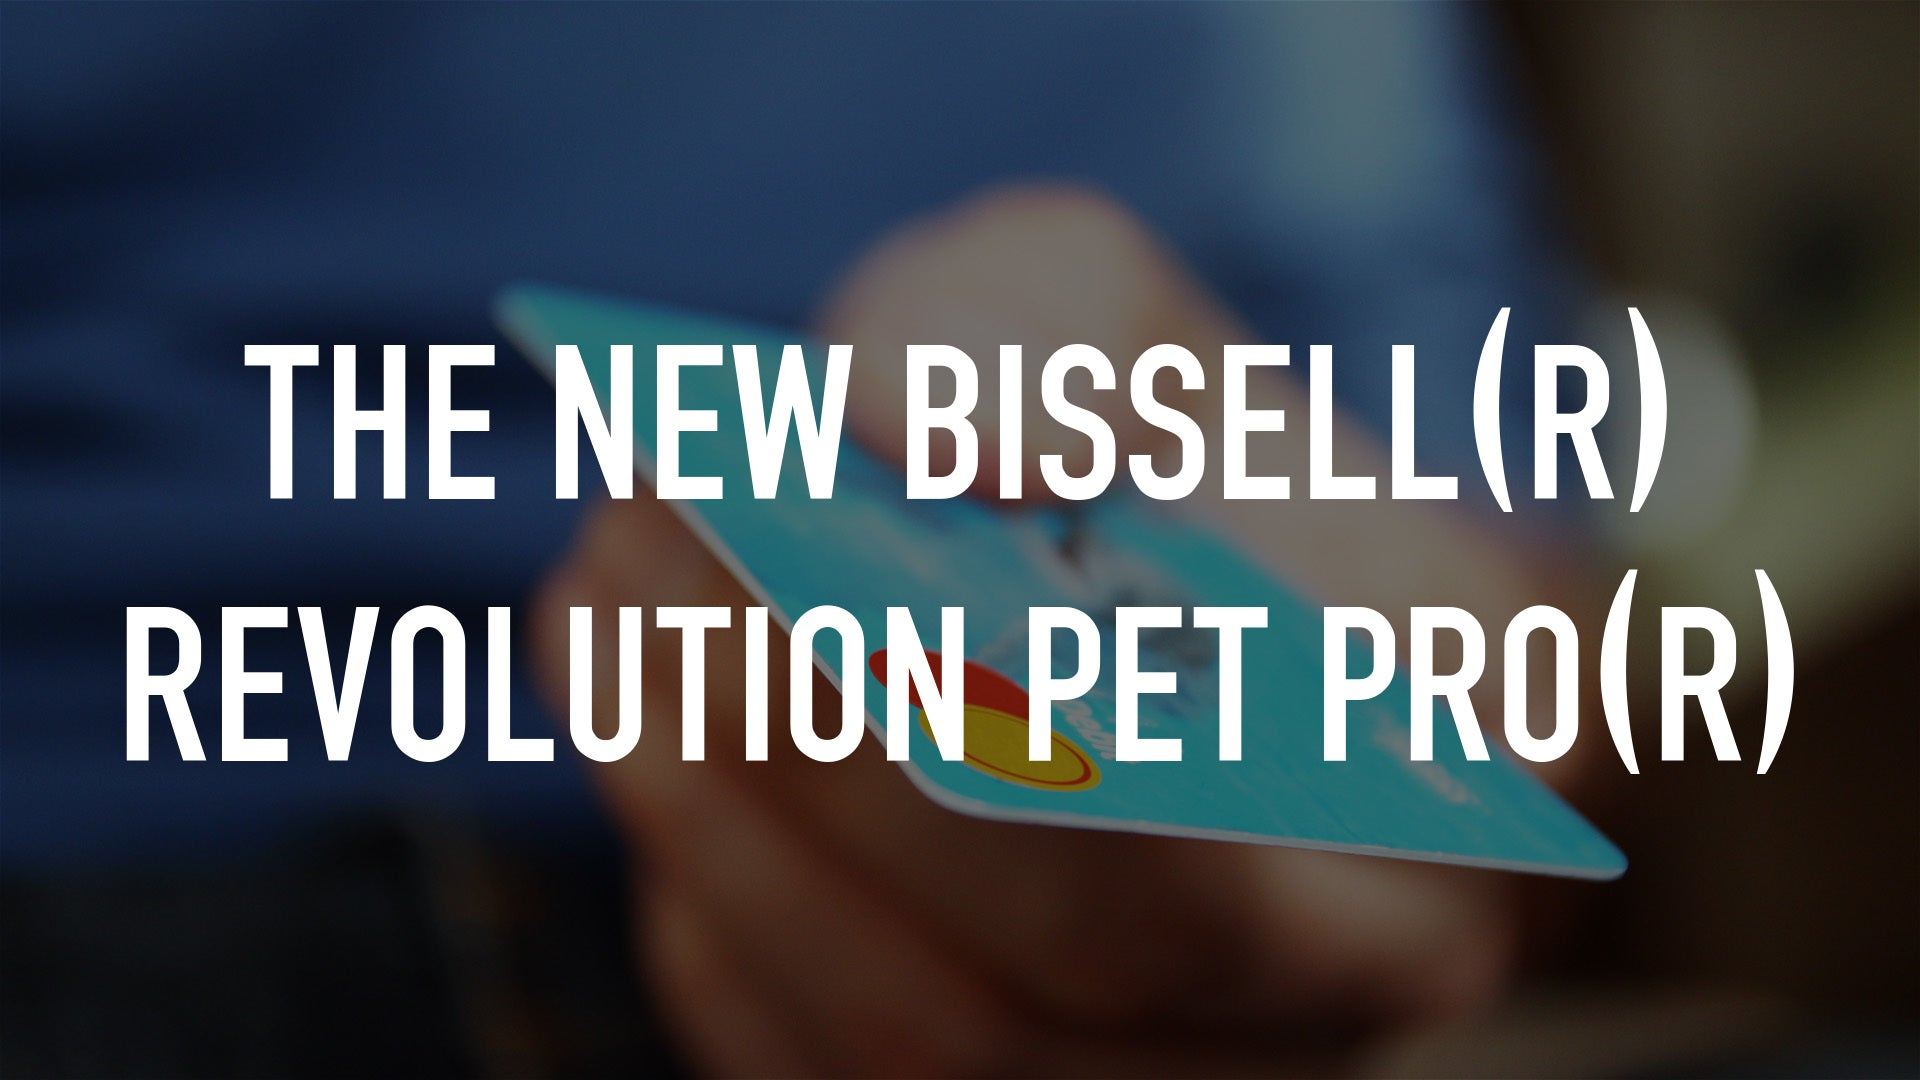 The New Bissell(R) Revolution Pet Pro(R)